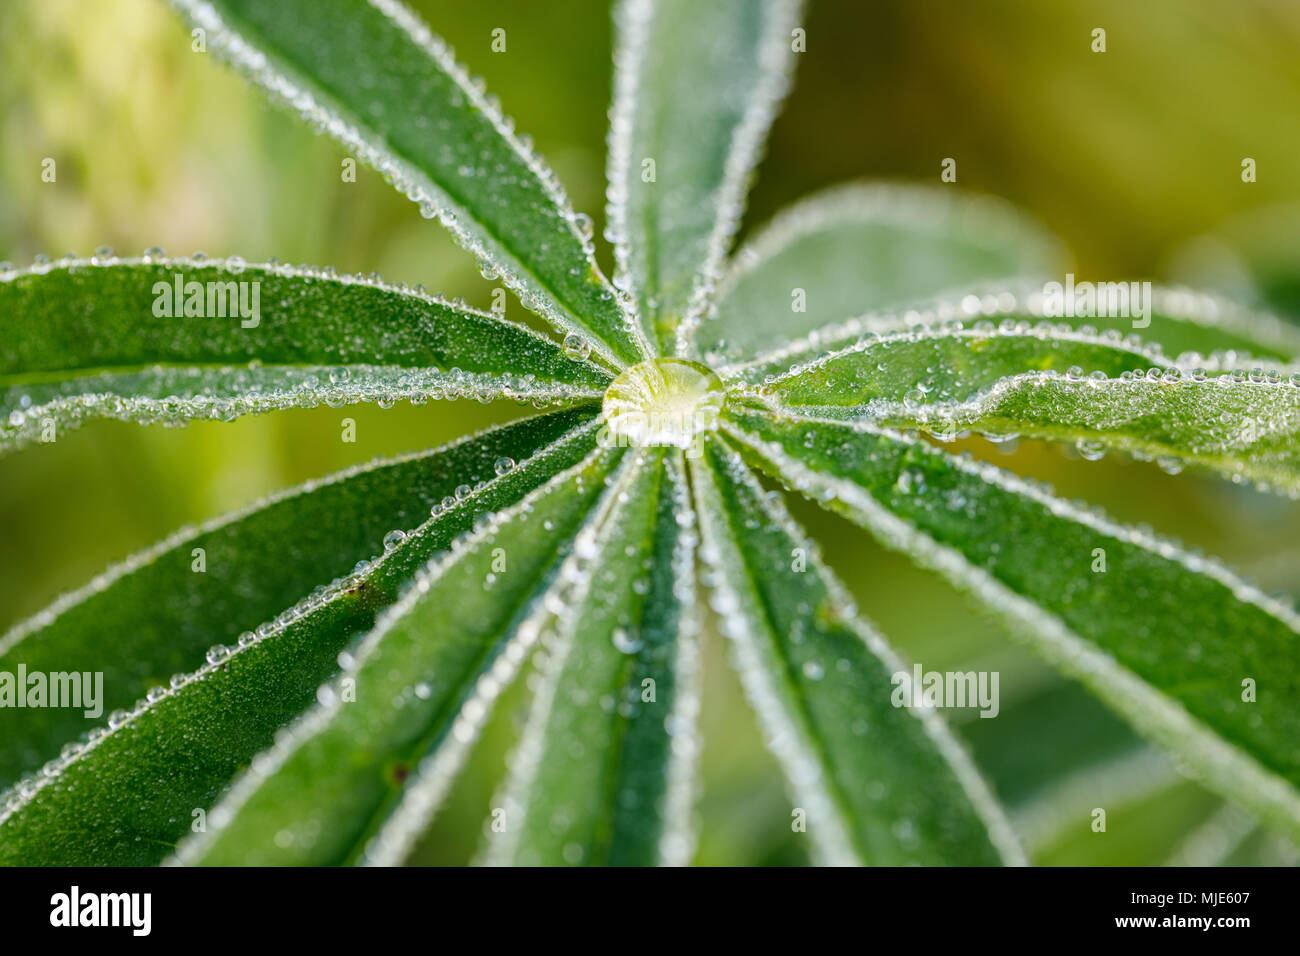 lupines leaf with drop of water, background image - Stock Image